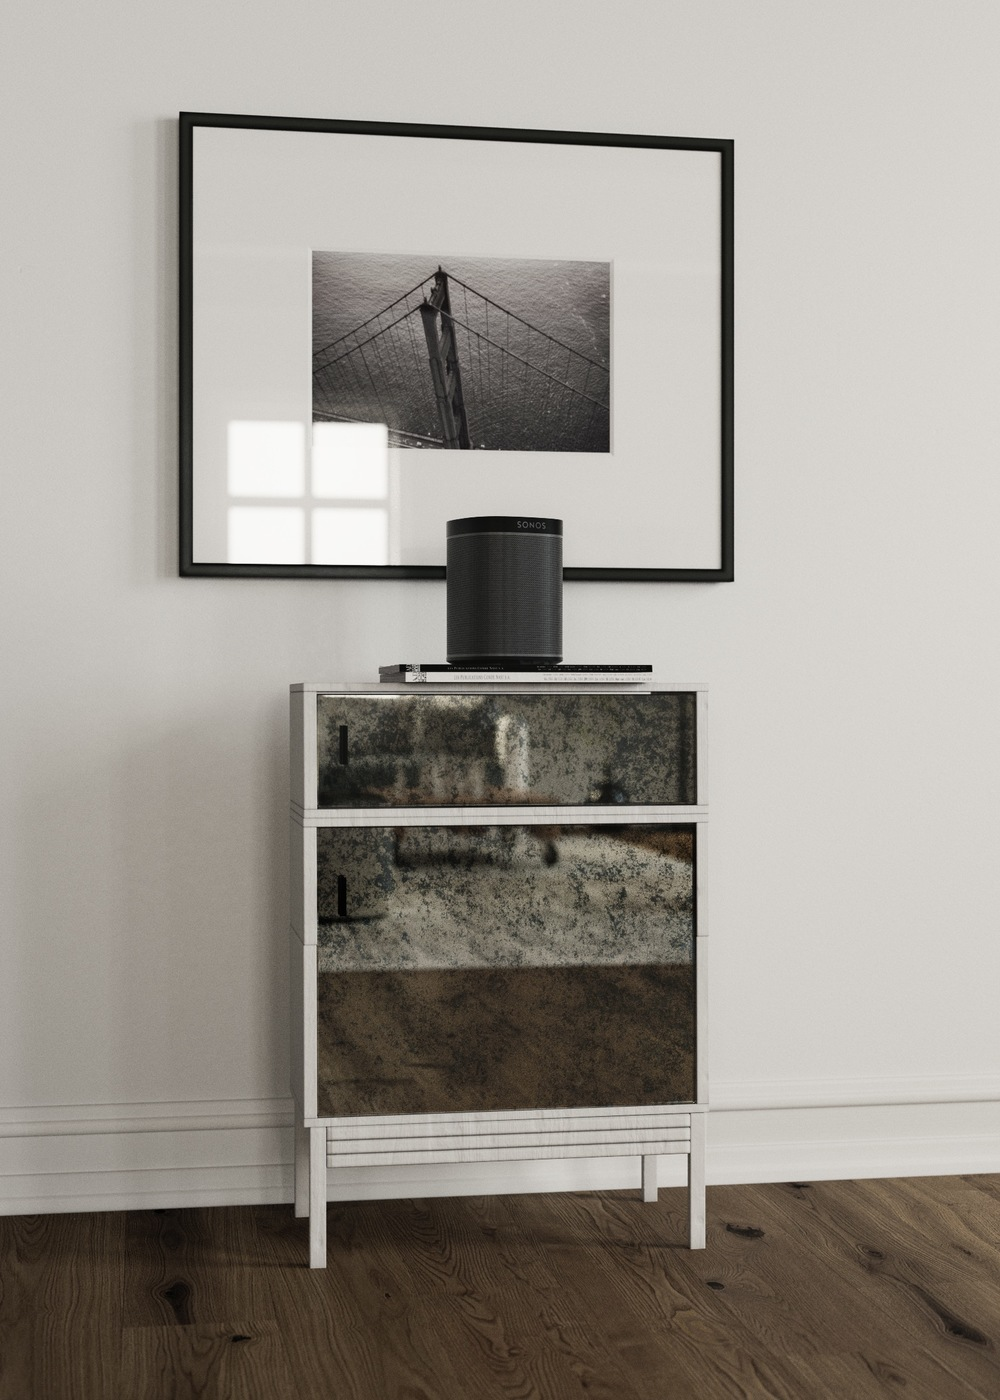 front view of mirrored cabinet